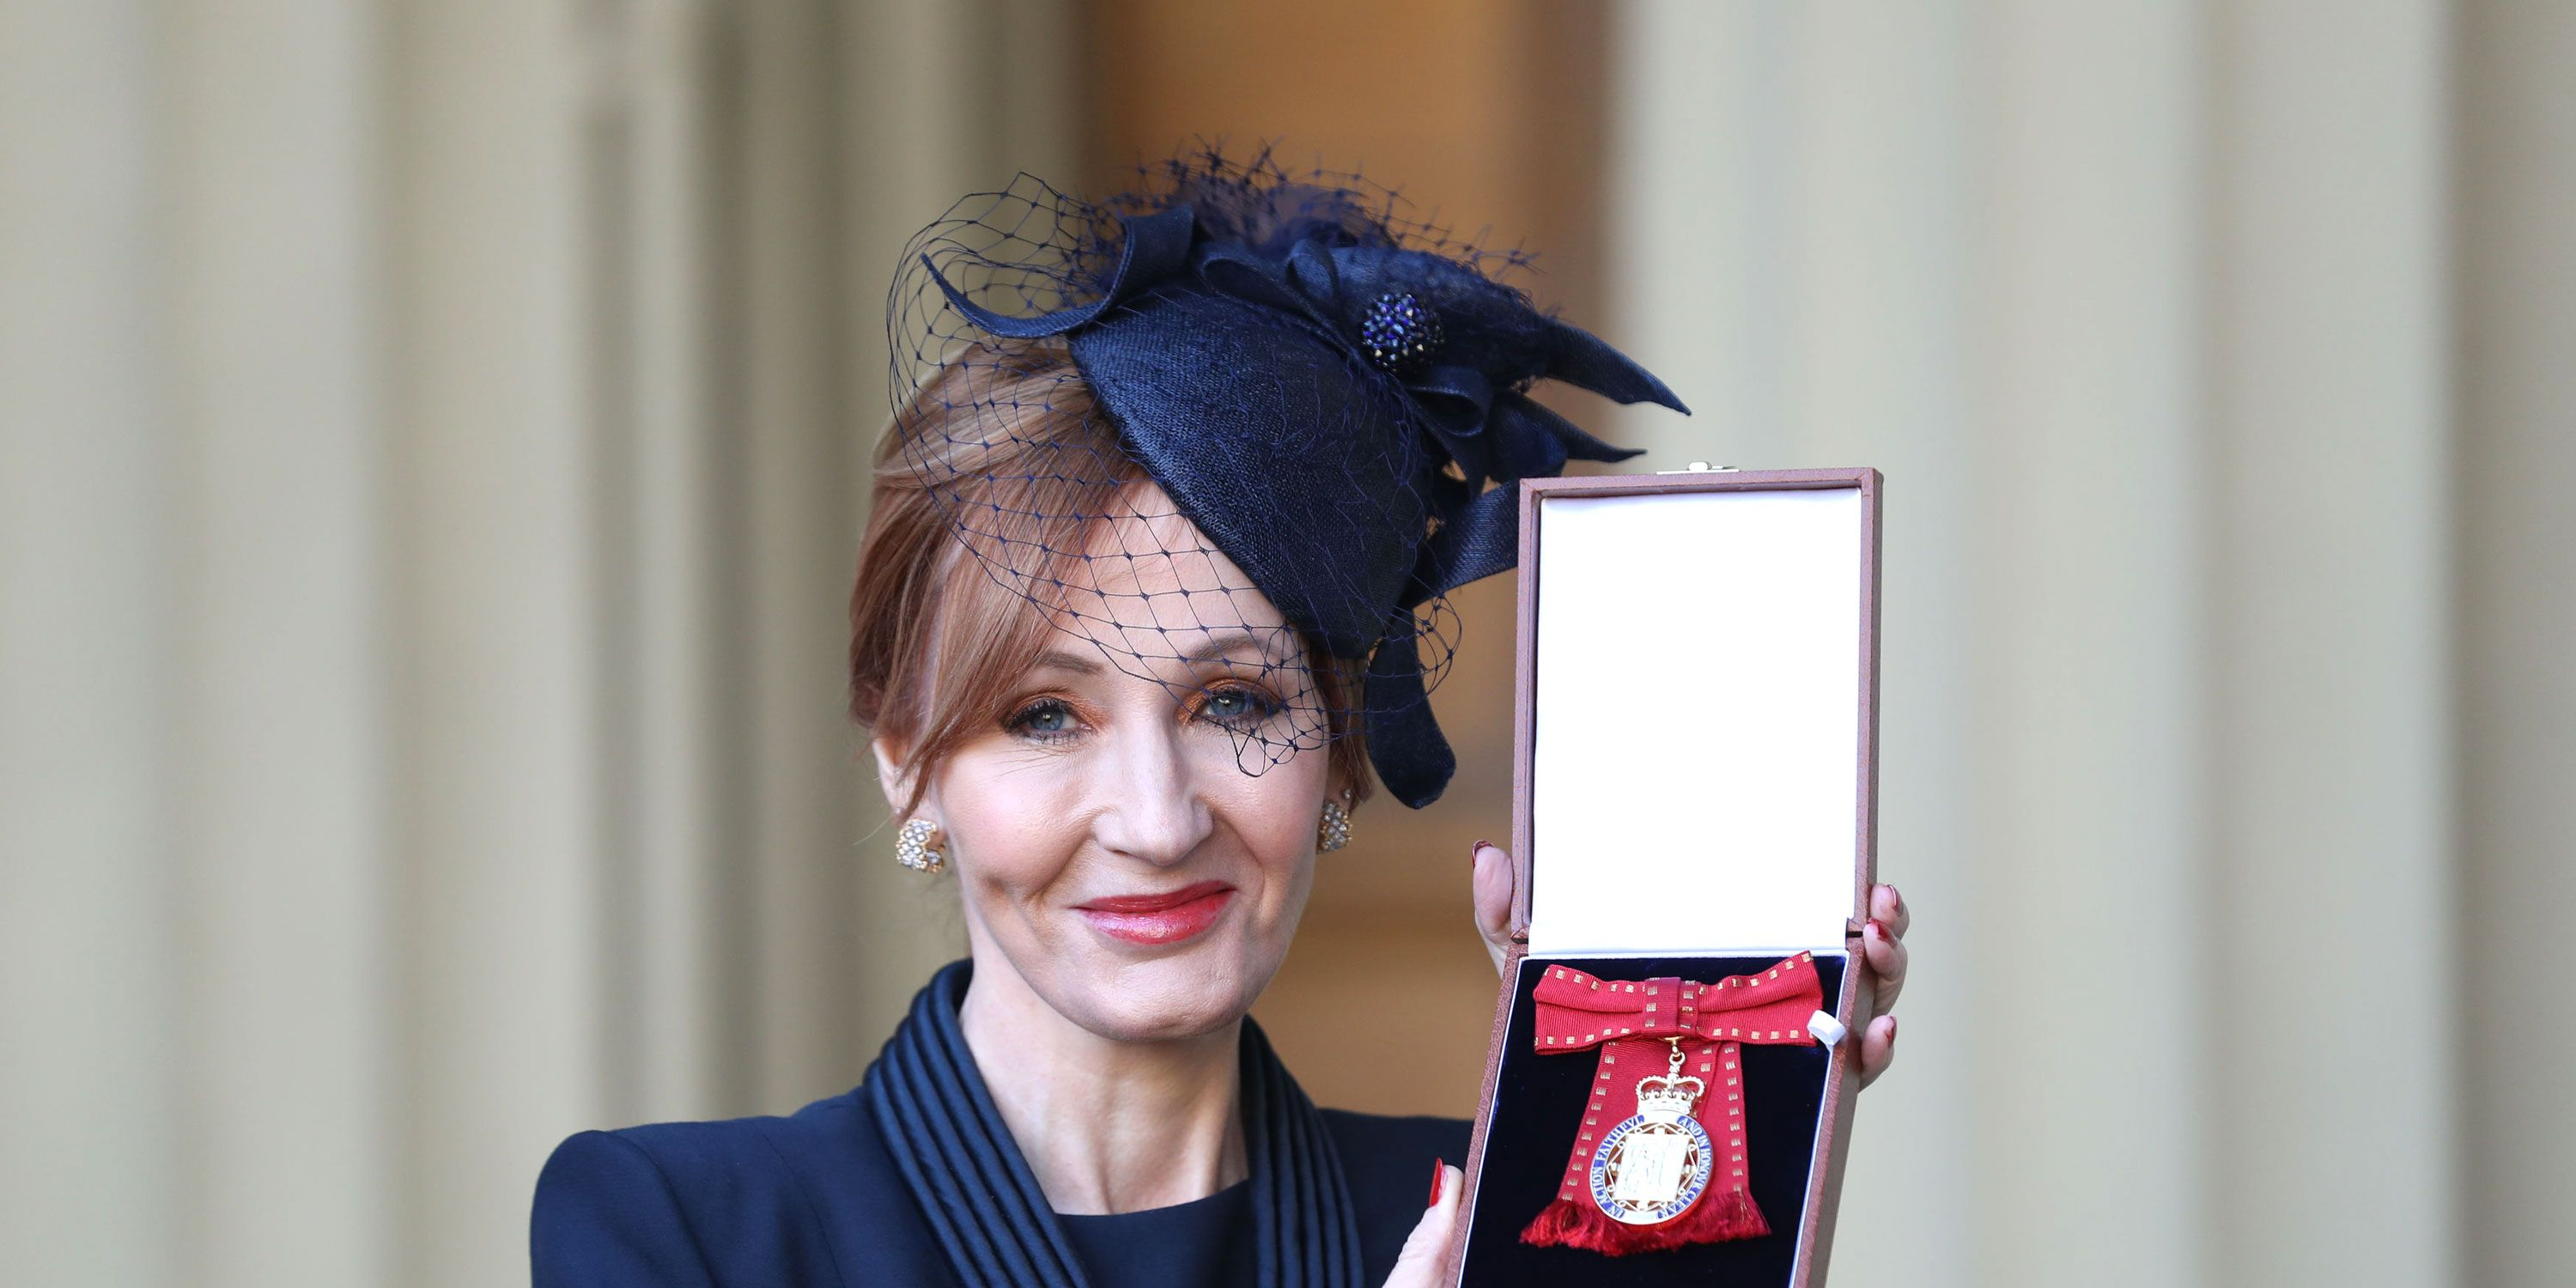 JK Rowling after she was made a Companion of Honour by the Duke of Cambridge during an Investiture ceremony at Buckingham Palace on December 12, 2017